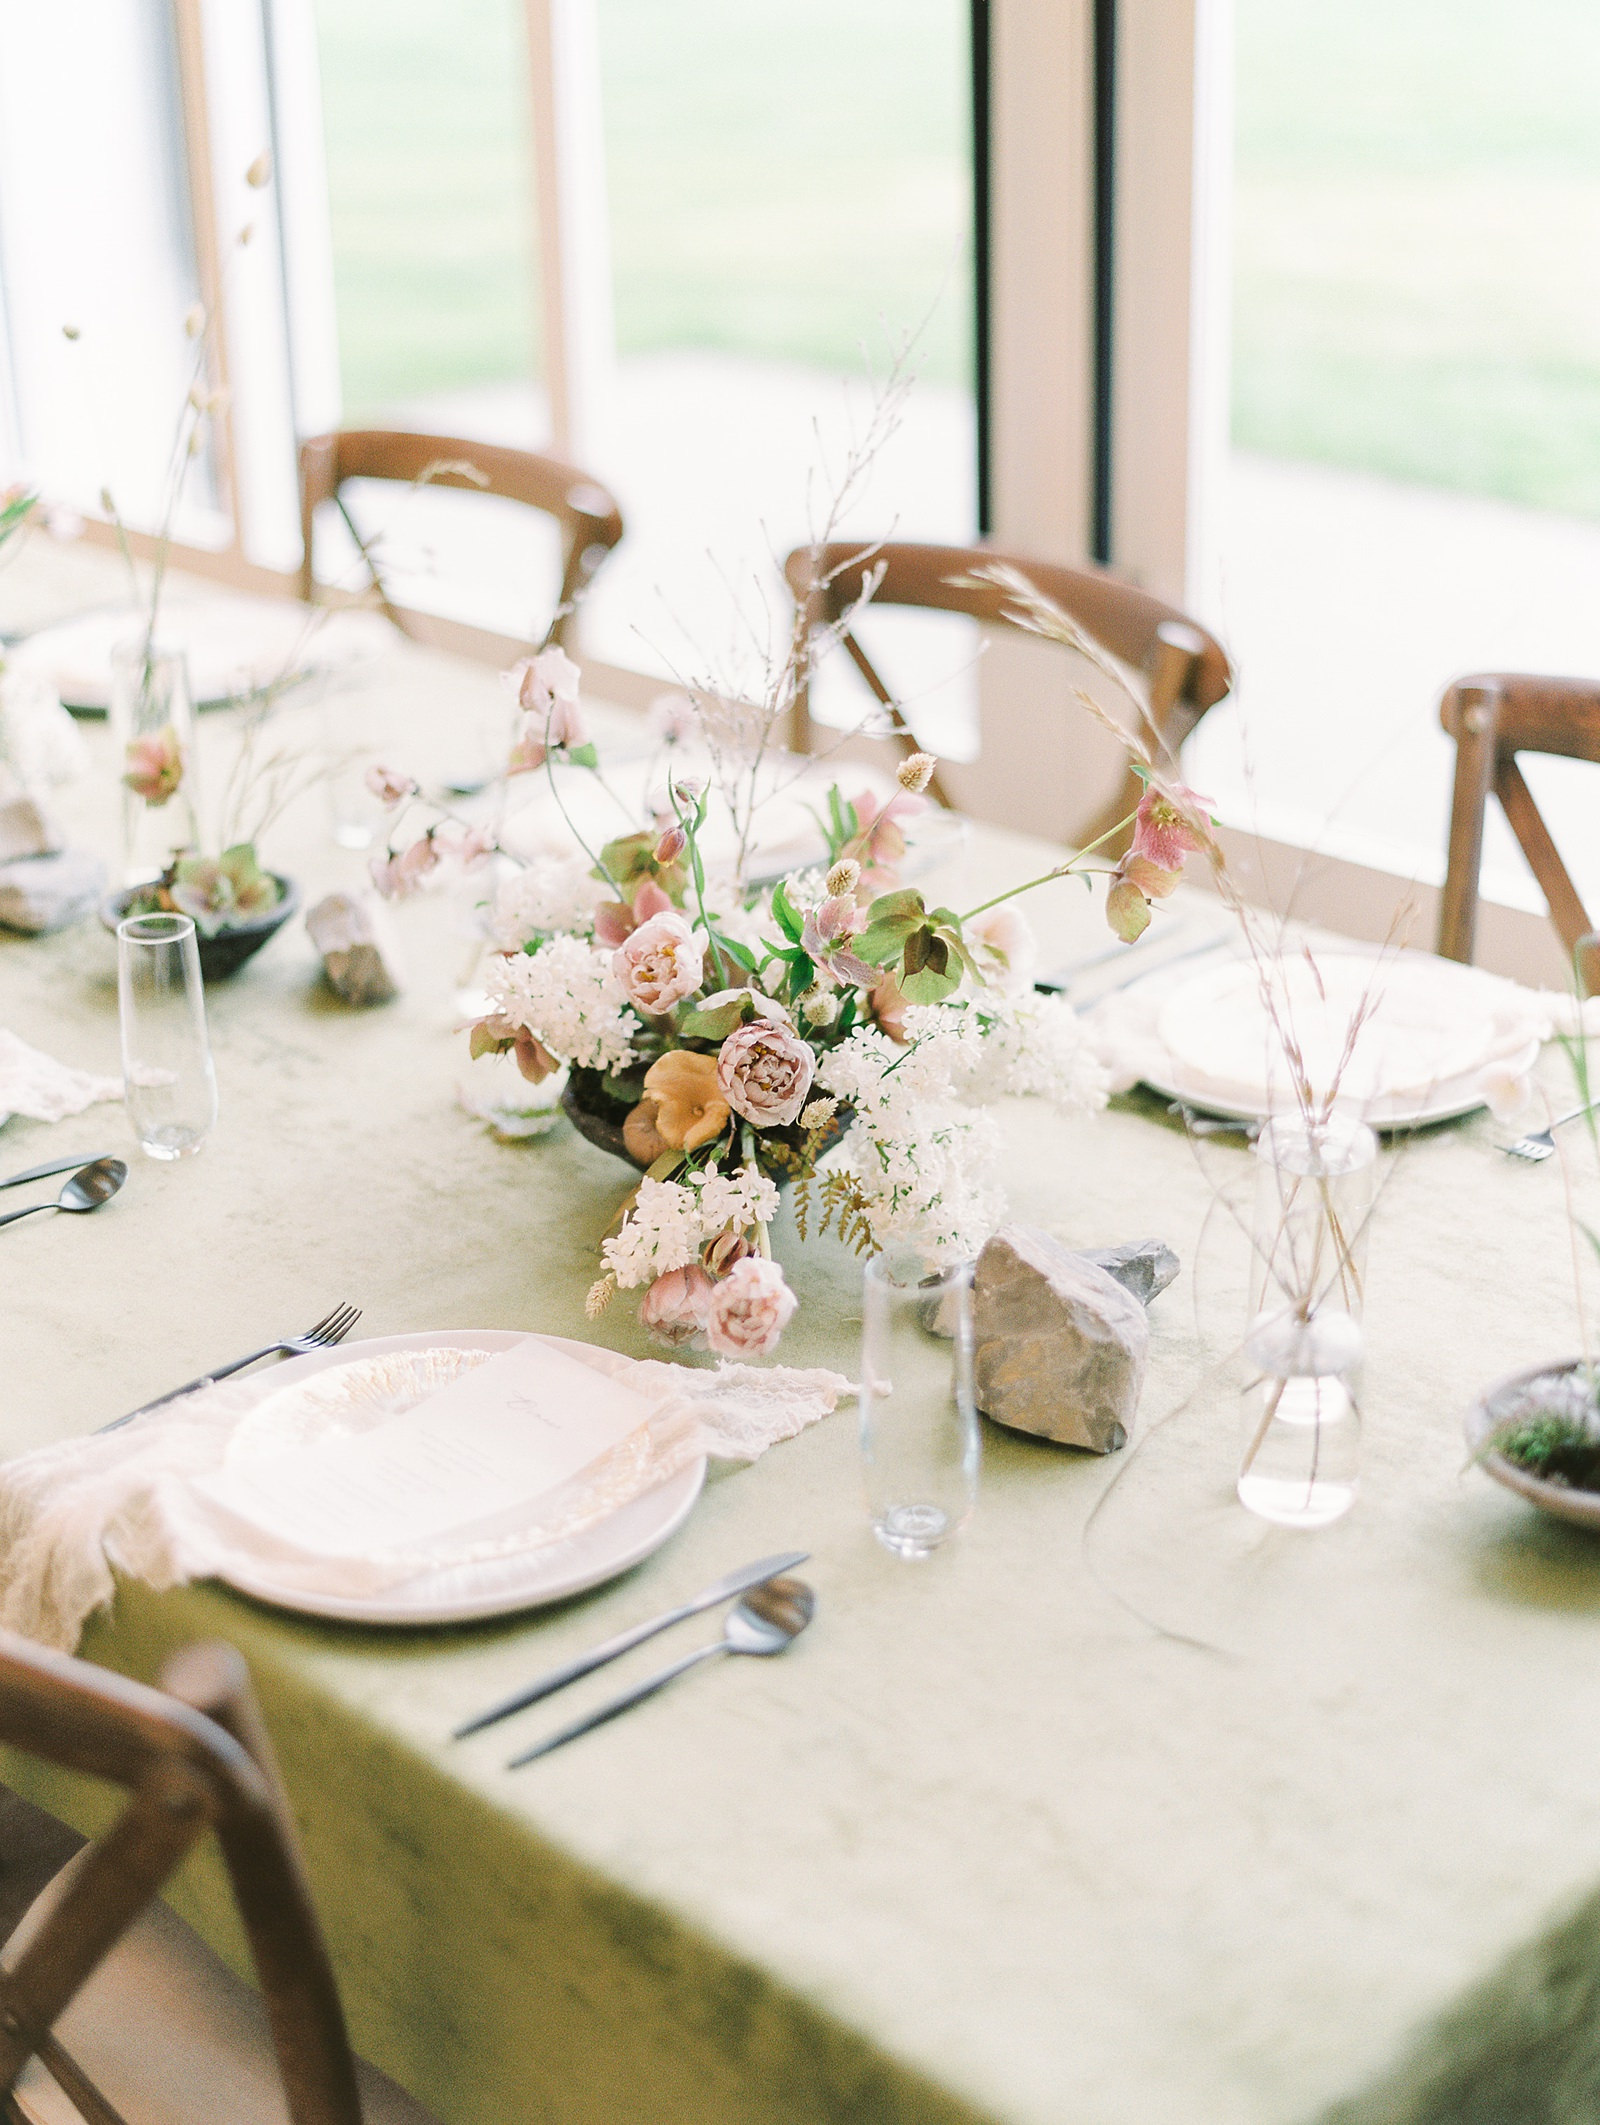 Heber Valley Natural Organic Wedding Inspiration at River Bottoms Ranch, Utah wedding film photography, green tablecloth wedding flower centerpiece with place settings